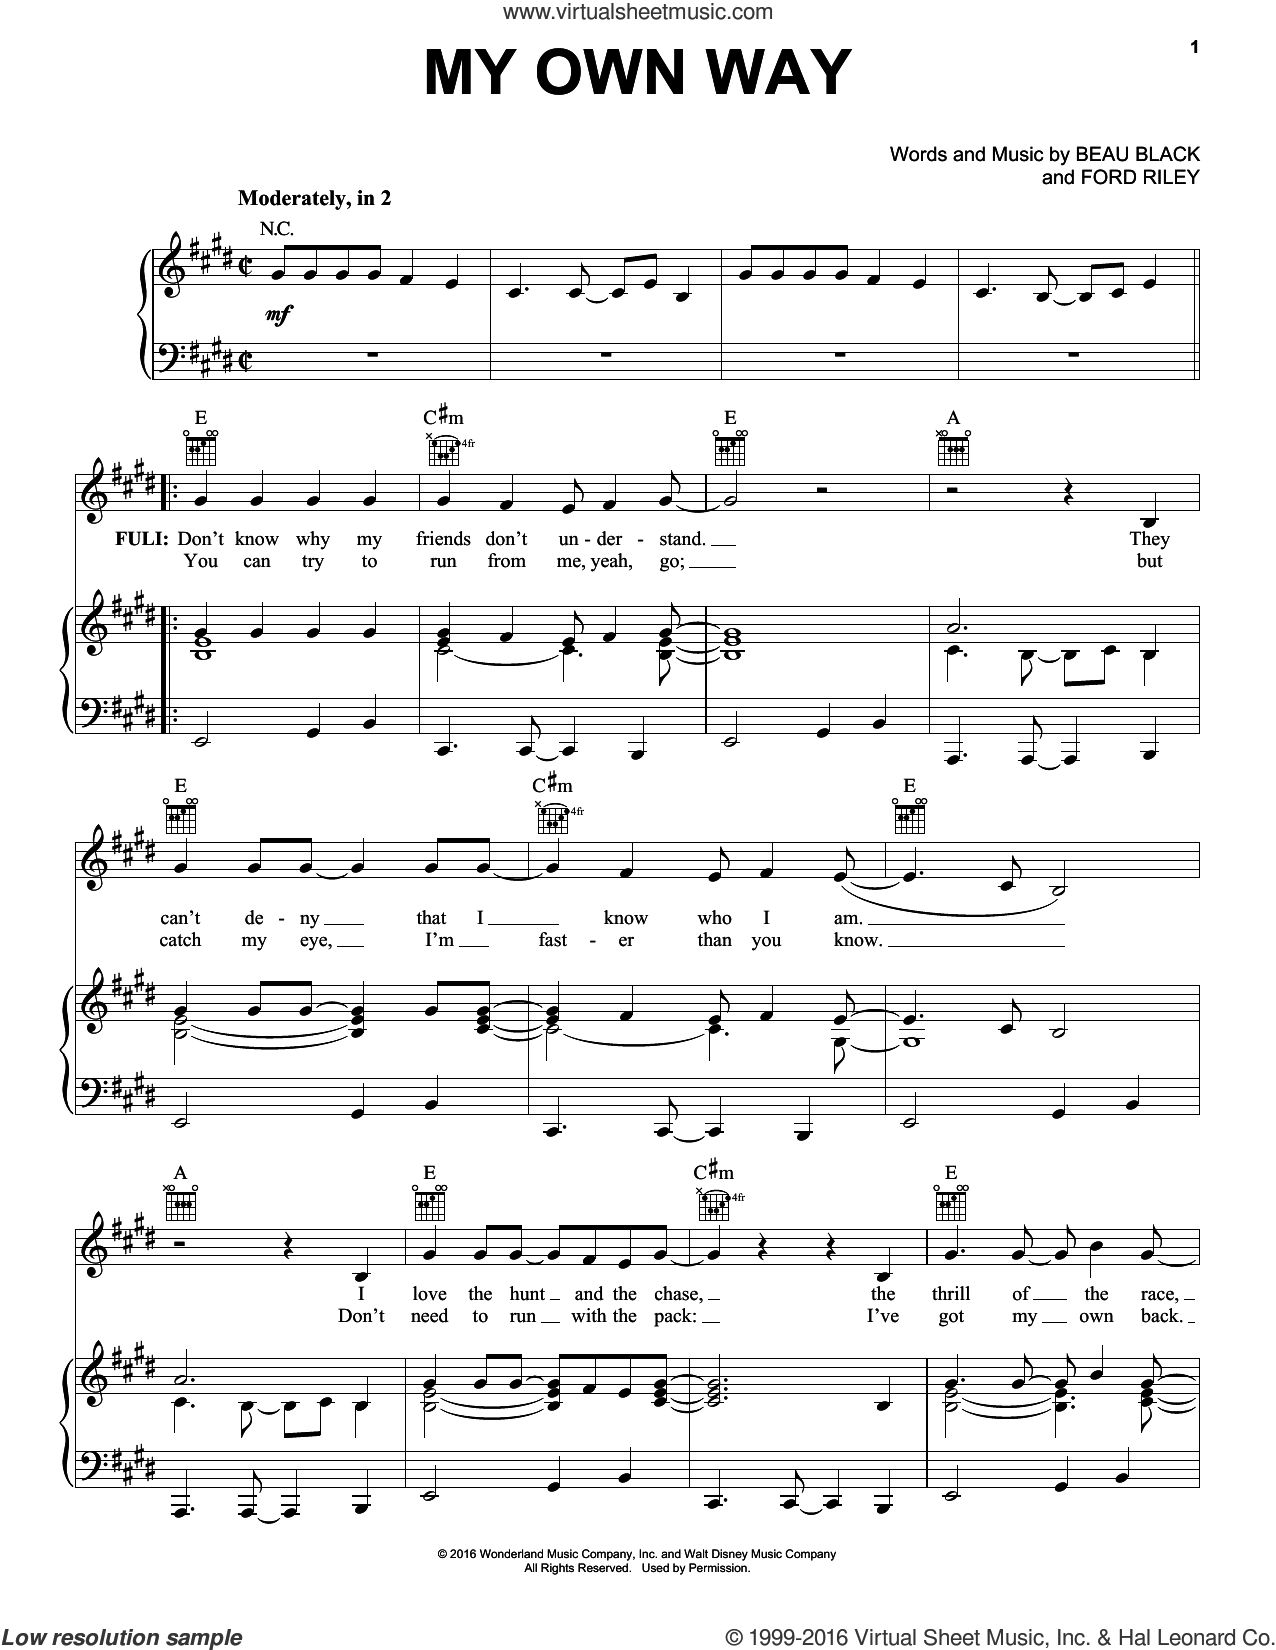 My Own Way sheet music for voice, piano or guitar by Beau Black and Ford Riley. Score Image Preview.